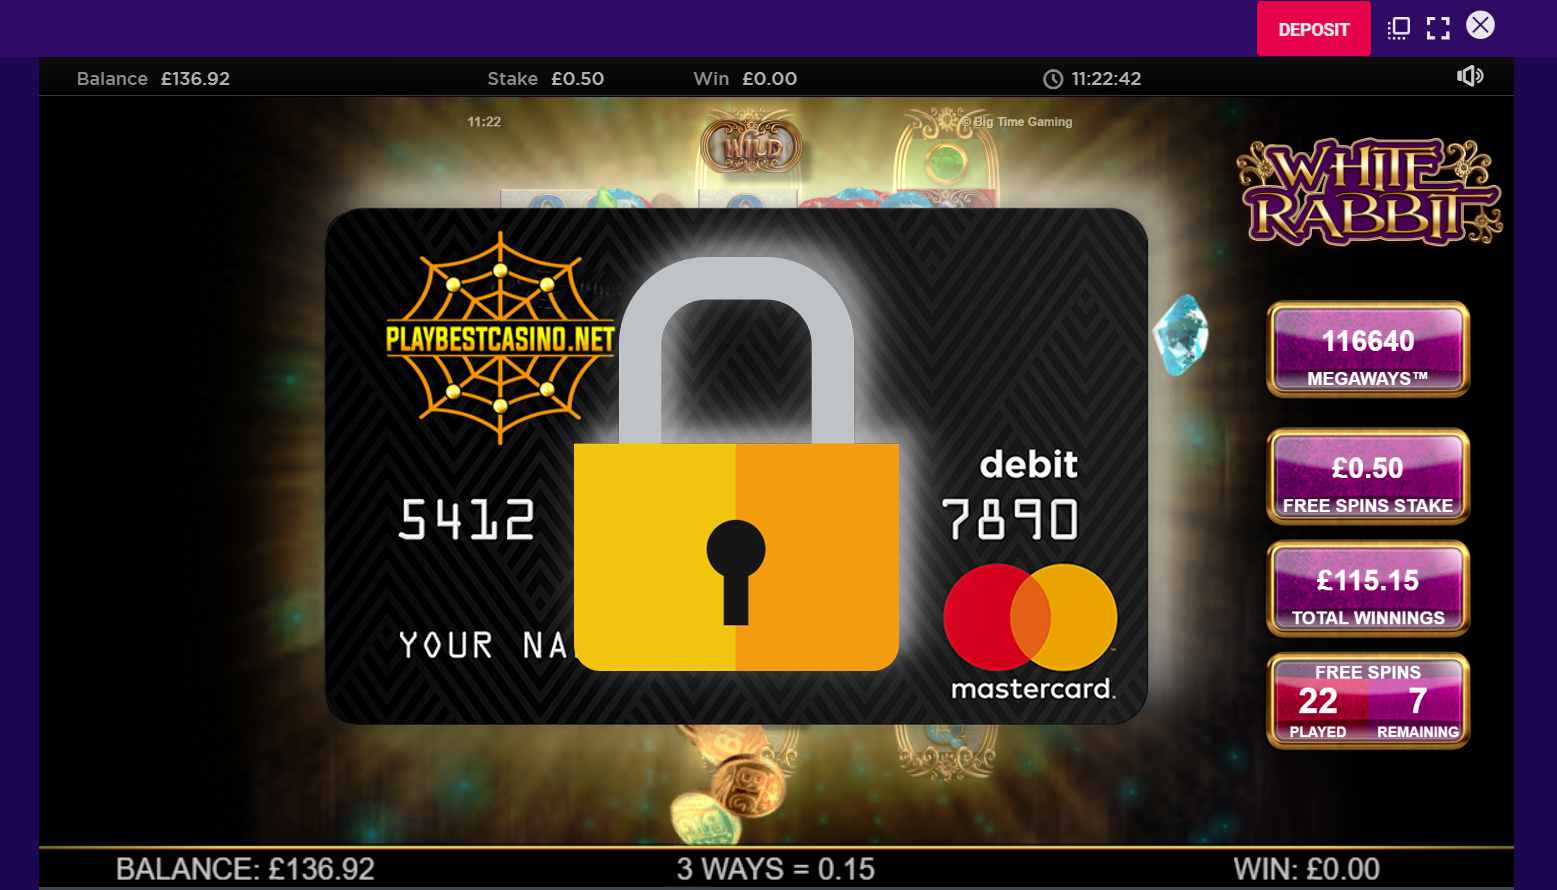 The lock on the gaming addiction and payment card is depicted in this snapshot.